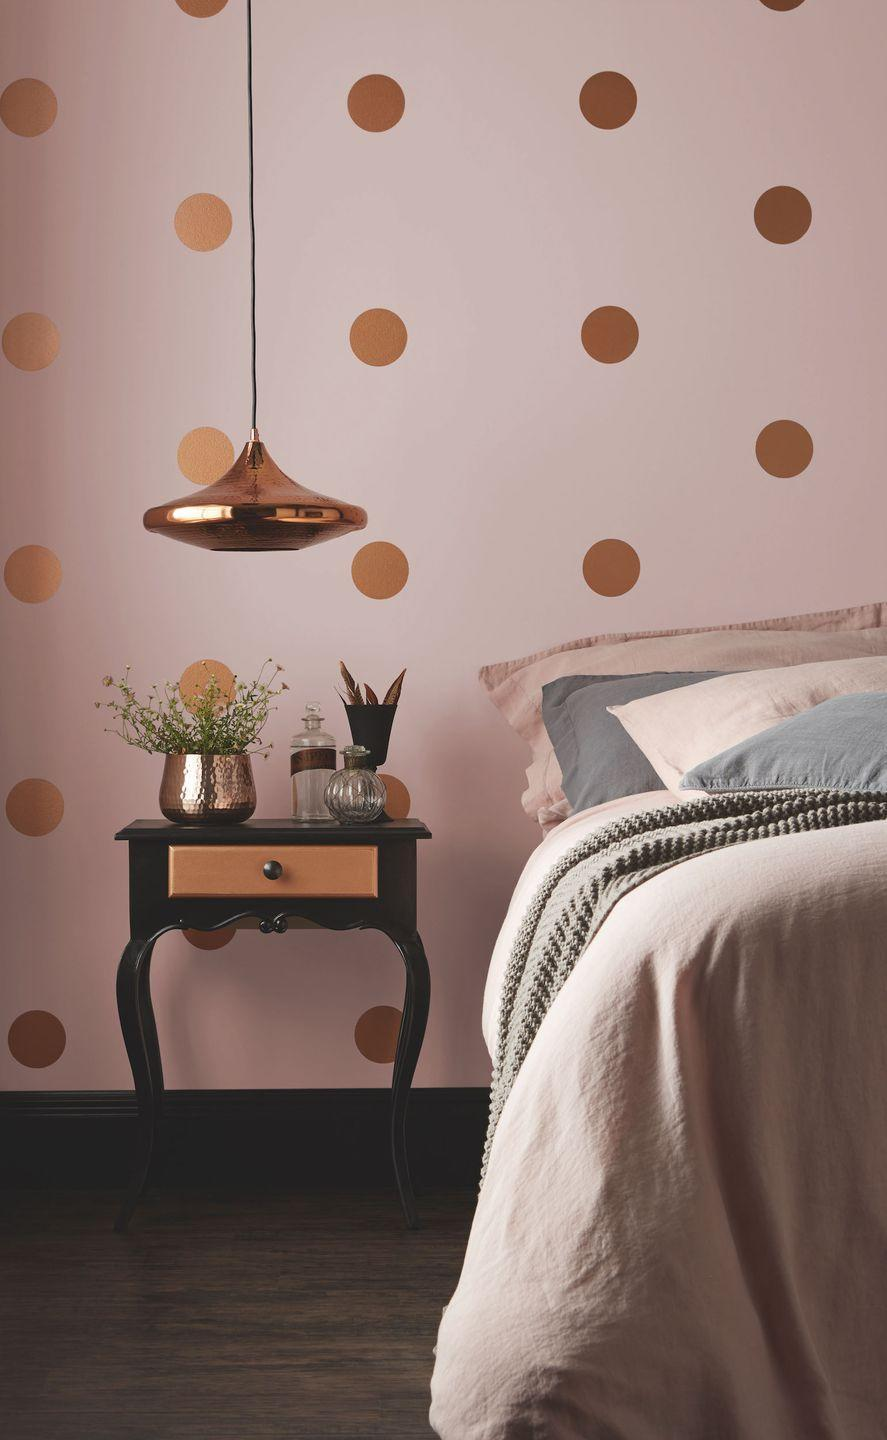 """<p>Using paint as a decorative element is a really fun way to make walls look individual. For this girls' bedroom idea, use a circle template to make the gold dots after you've painted the wall pink. And don't forget you can paint furniture too – this elegant side table is painted black with a gold drawer to match the walls. Then add in a gold pendant and some dusky pink bedding to accessorise.</p><p>Pictured: Pashmina, Copper and Jet Black emulsion, <a href=""""https://www.crownpaints.co.uk/products/standard-emulsion/matt/pashmina%C2%AE/182"""" rel=""""nofollow noopener"""" target=""""_blank"""" data-ylk=""""slk:Crown"""" class=""""link rapid-noclick-resp"""">Crown</a></p>"""